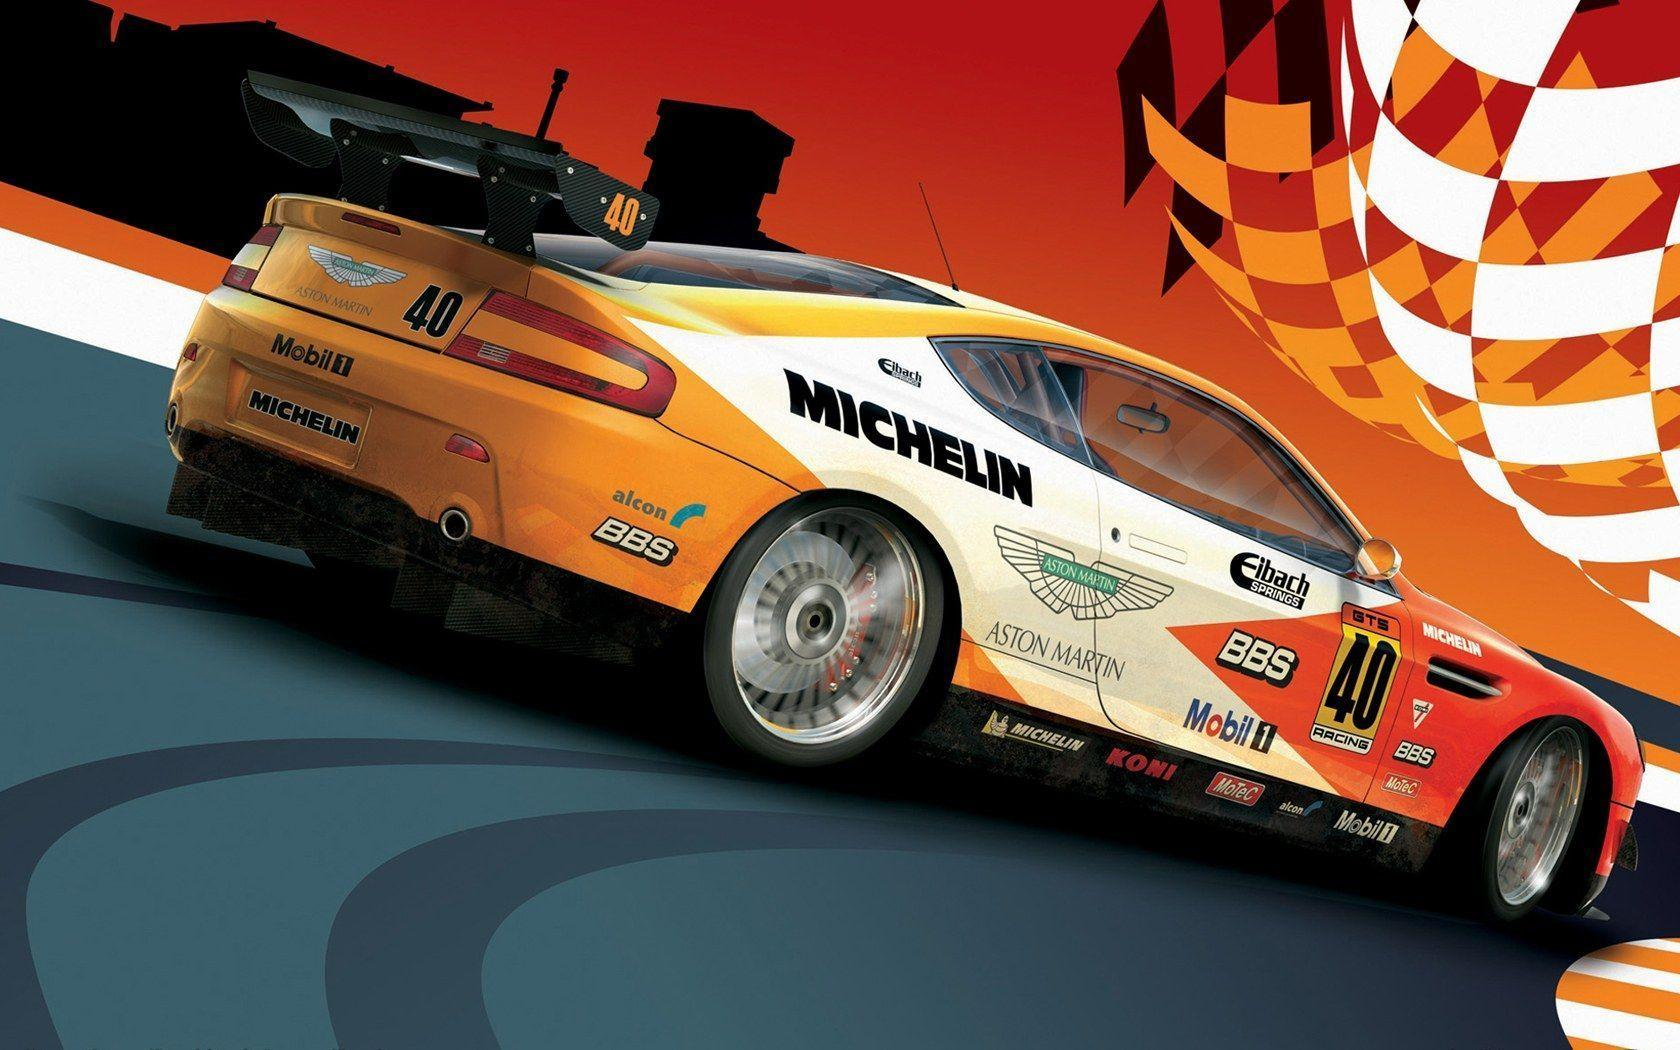 Race Car Wallpapers Wallpaper Cave - Cool car games